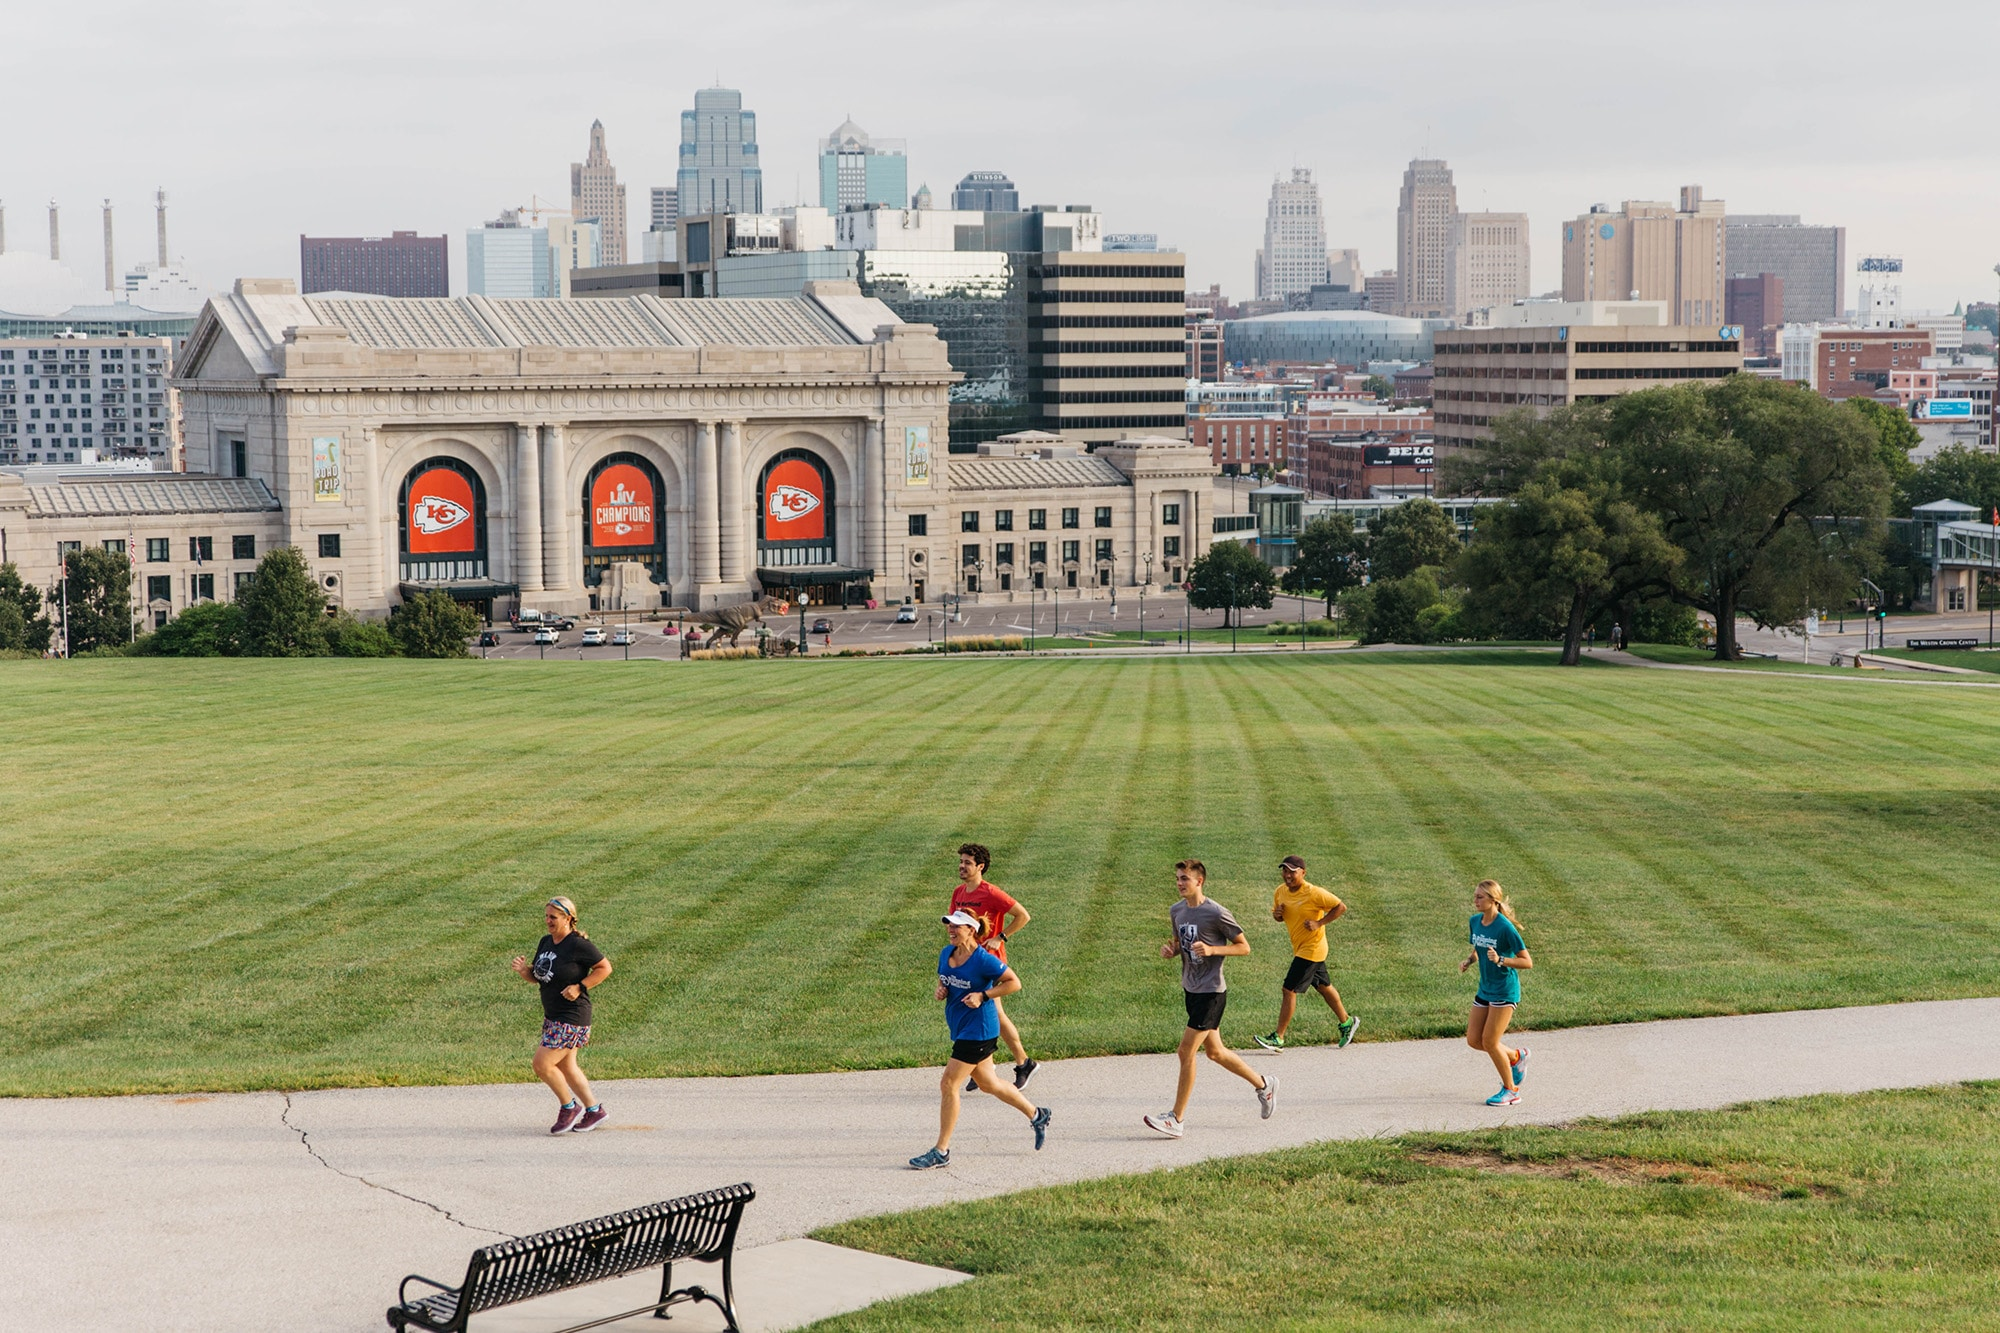 group of runners jogging in front of union station building with kansas city skyline in background